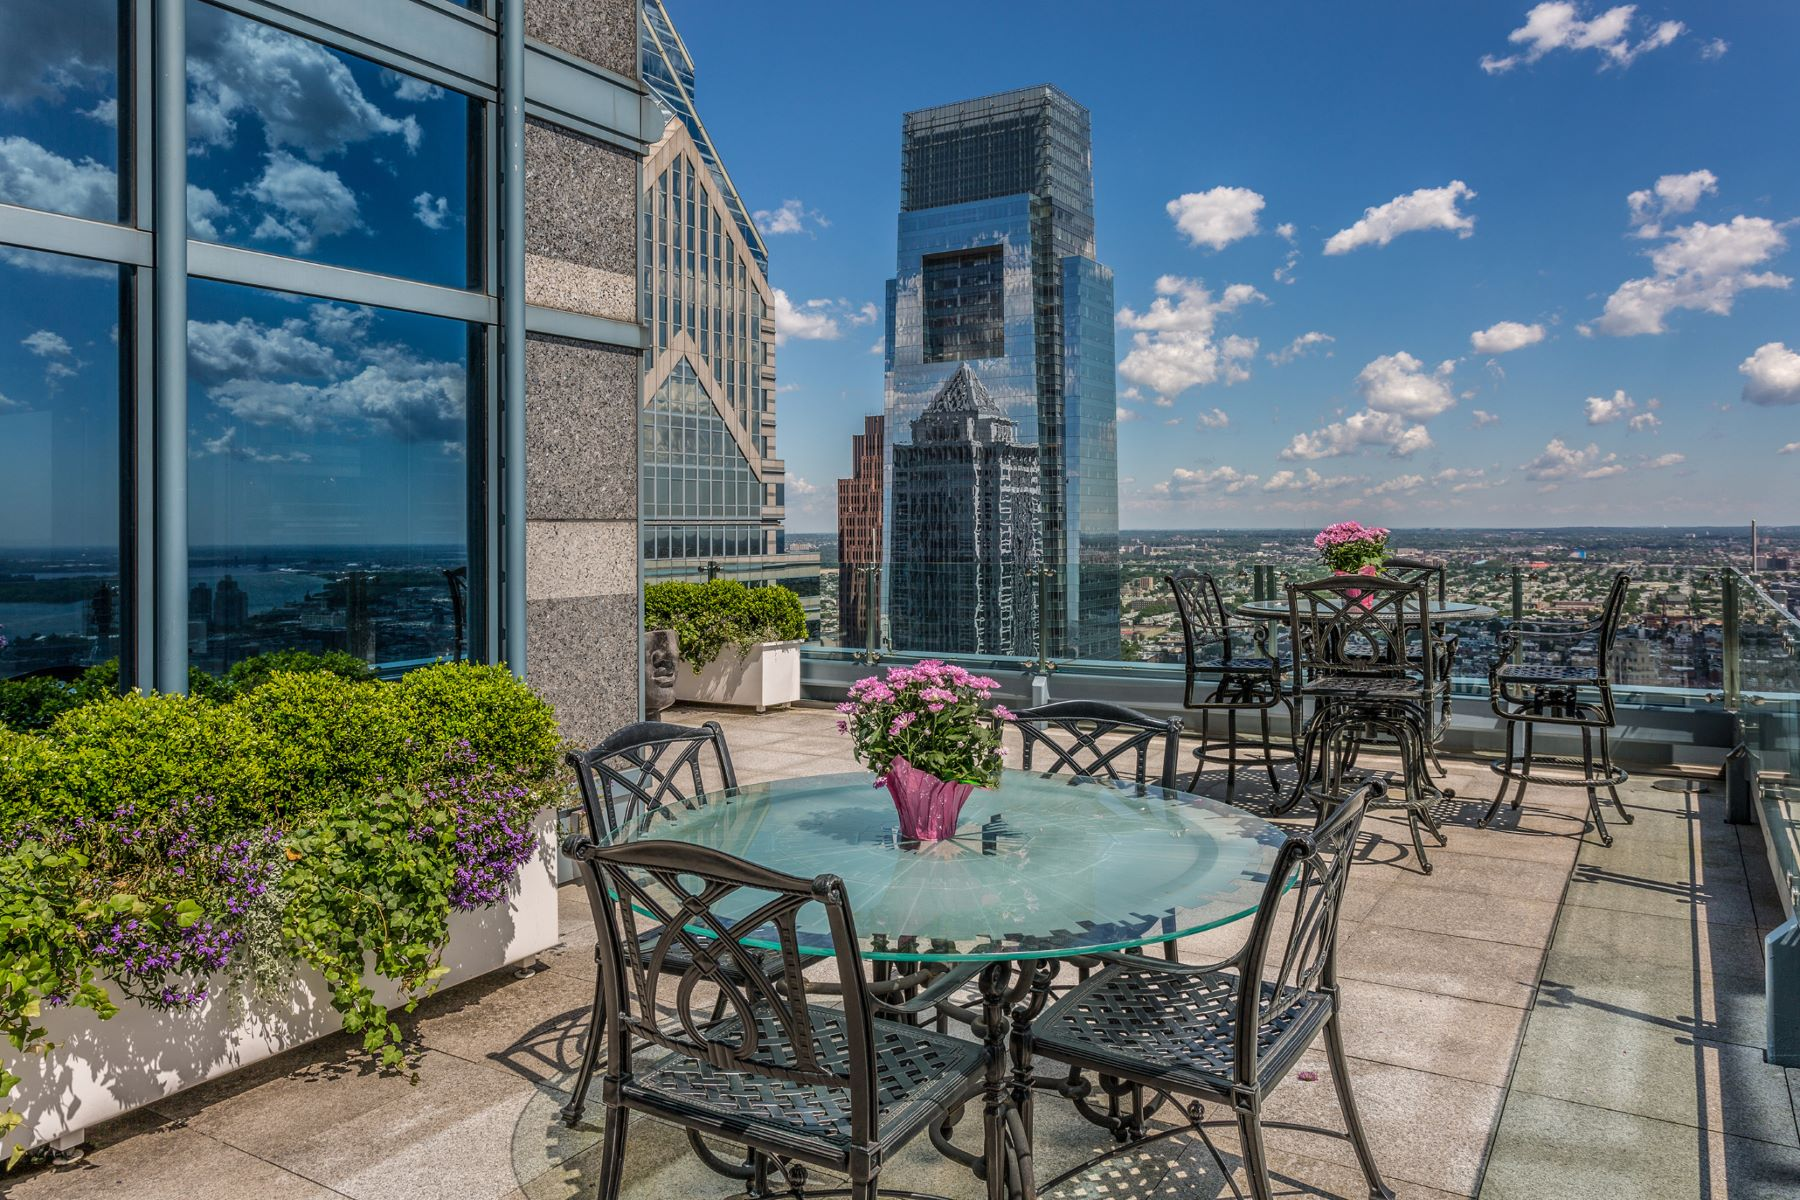 Condominium for Sale at Two Liberty Residence 50 S 16TH ST #4604 4604, Philadelphia, Pennsylvania 19102 United States